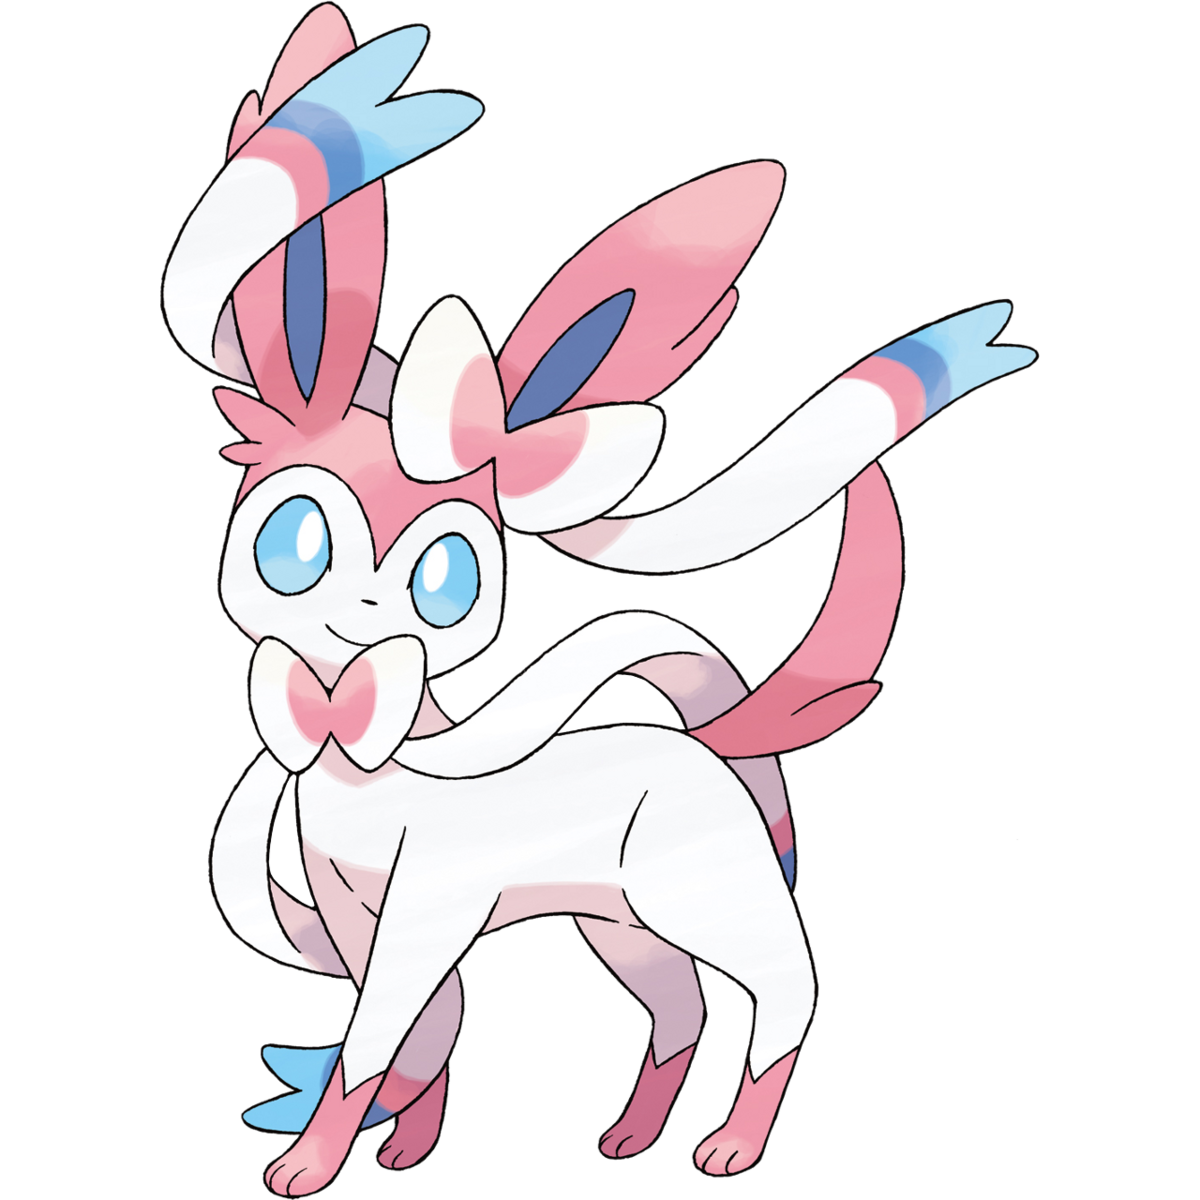 Sylveon Sugimori Artwork